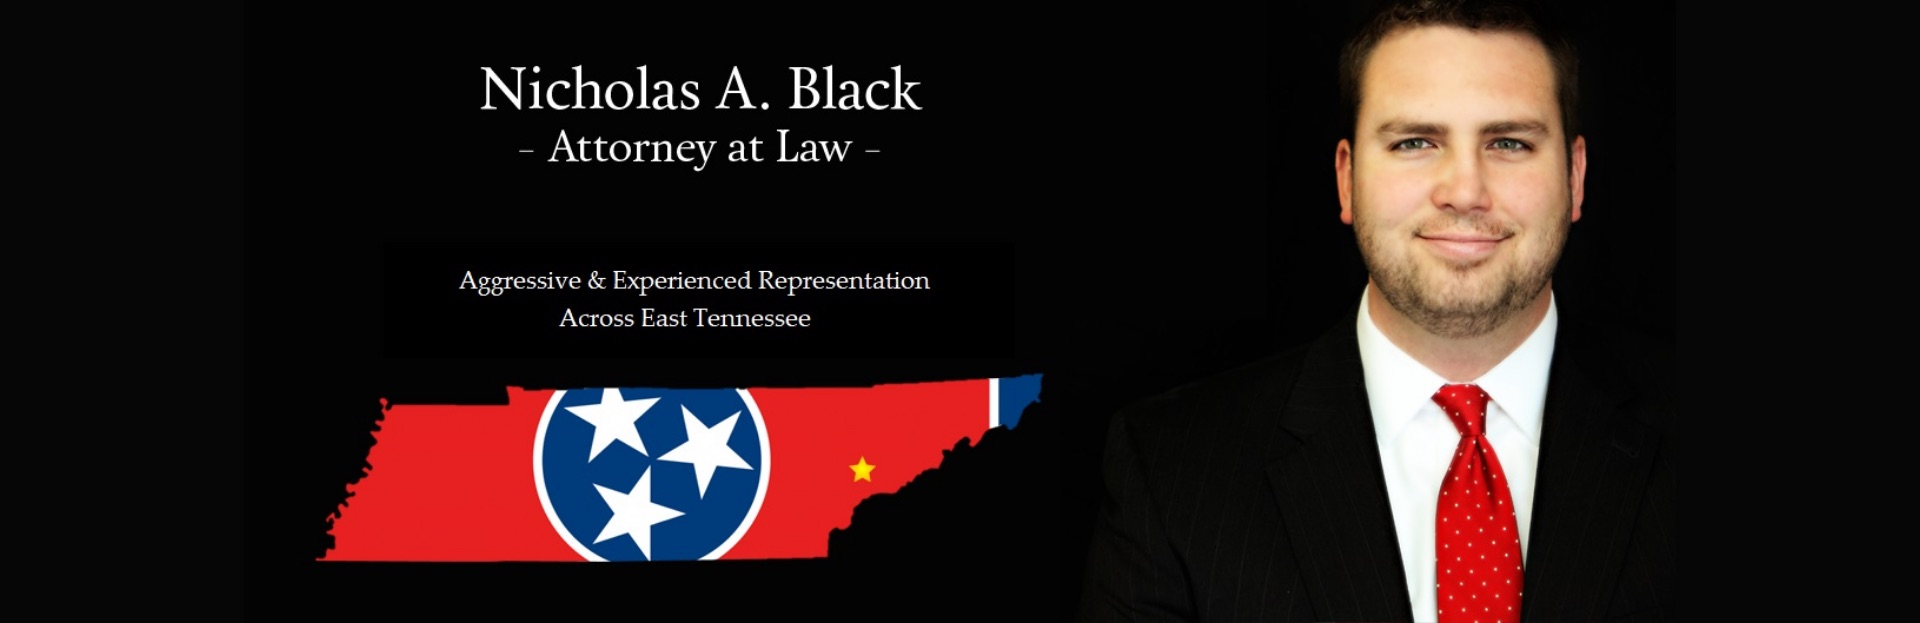 Header image with a photo of the nablaw